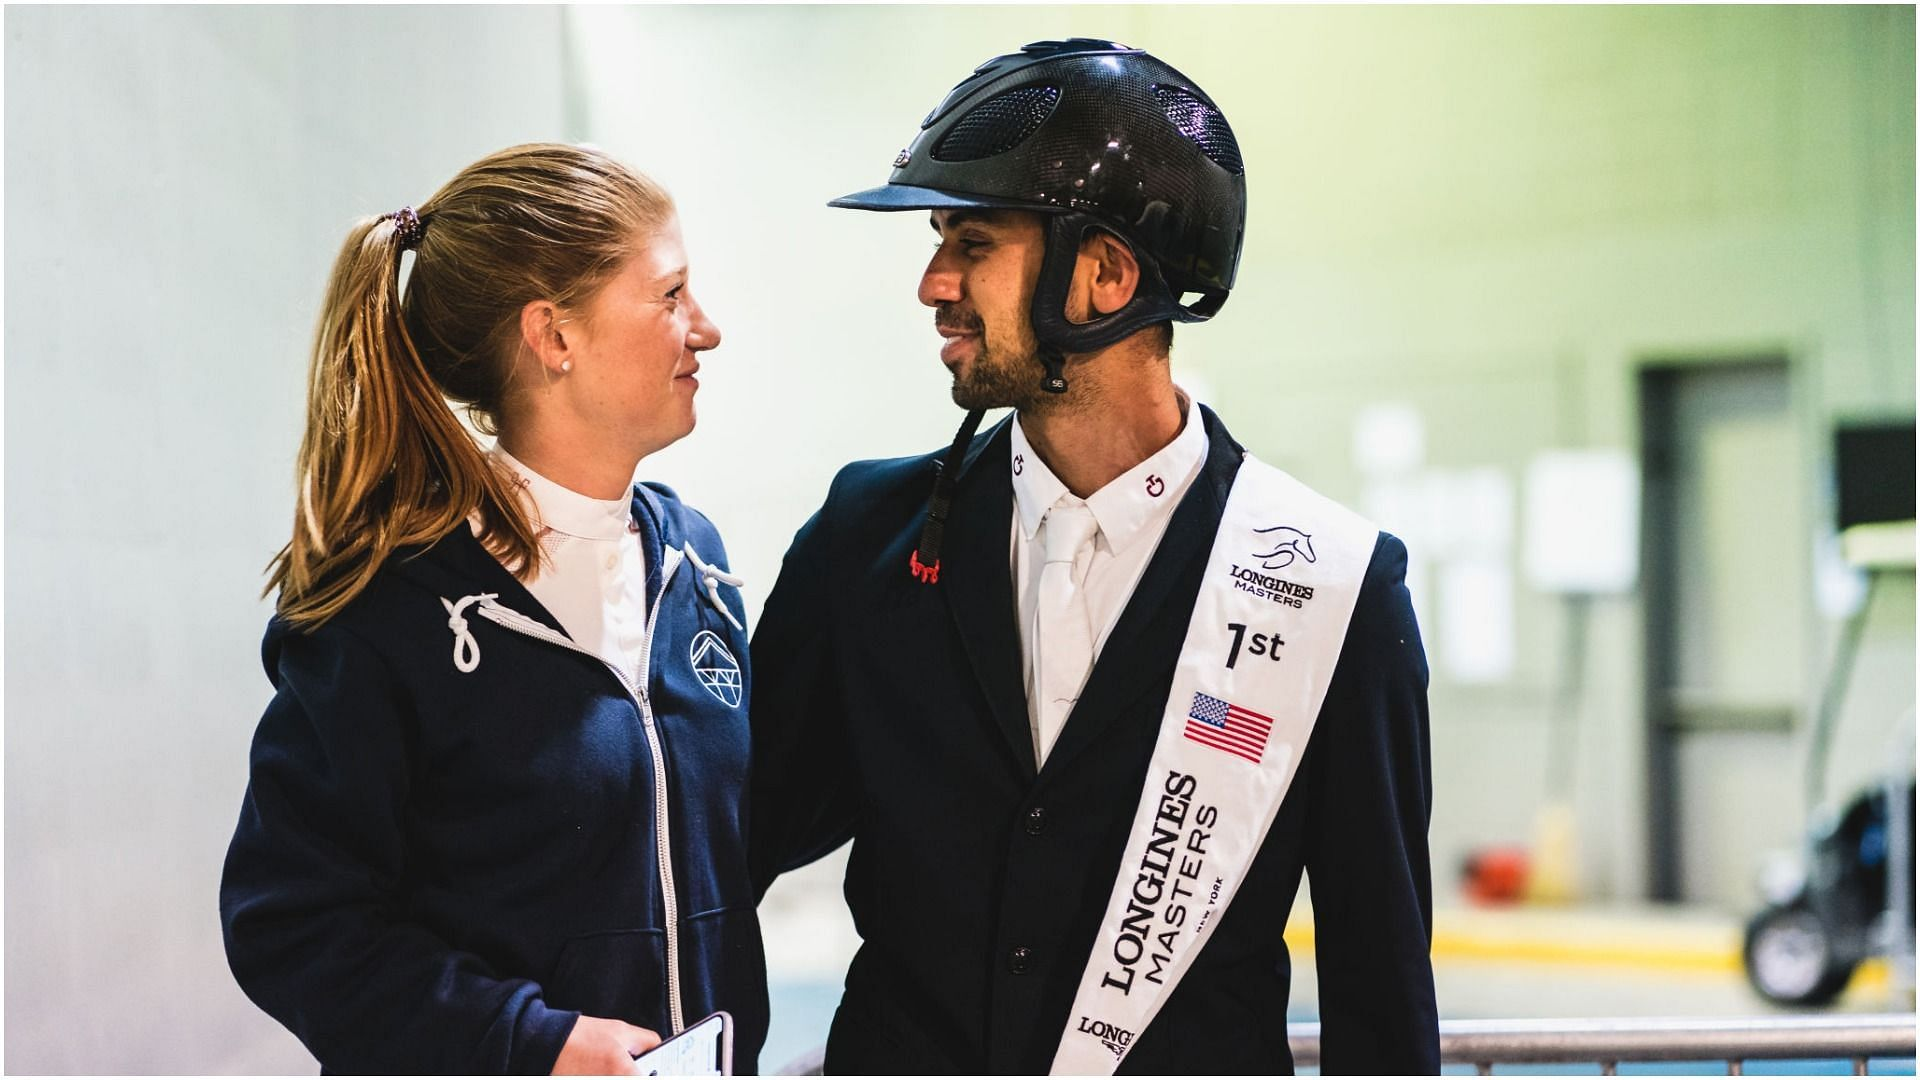 Nayel Nassar and girlfriend Jennifer Gates after the Longines Grand Prix de New York at the Longines Masters New York 2019 at NYBC Live in Uniondale, New York (Image via Getty Images)